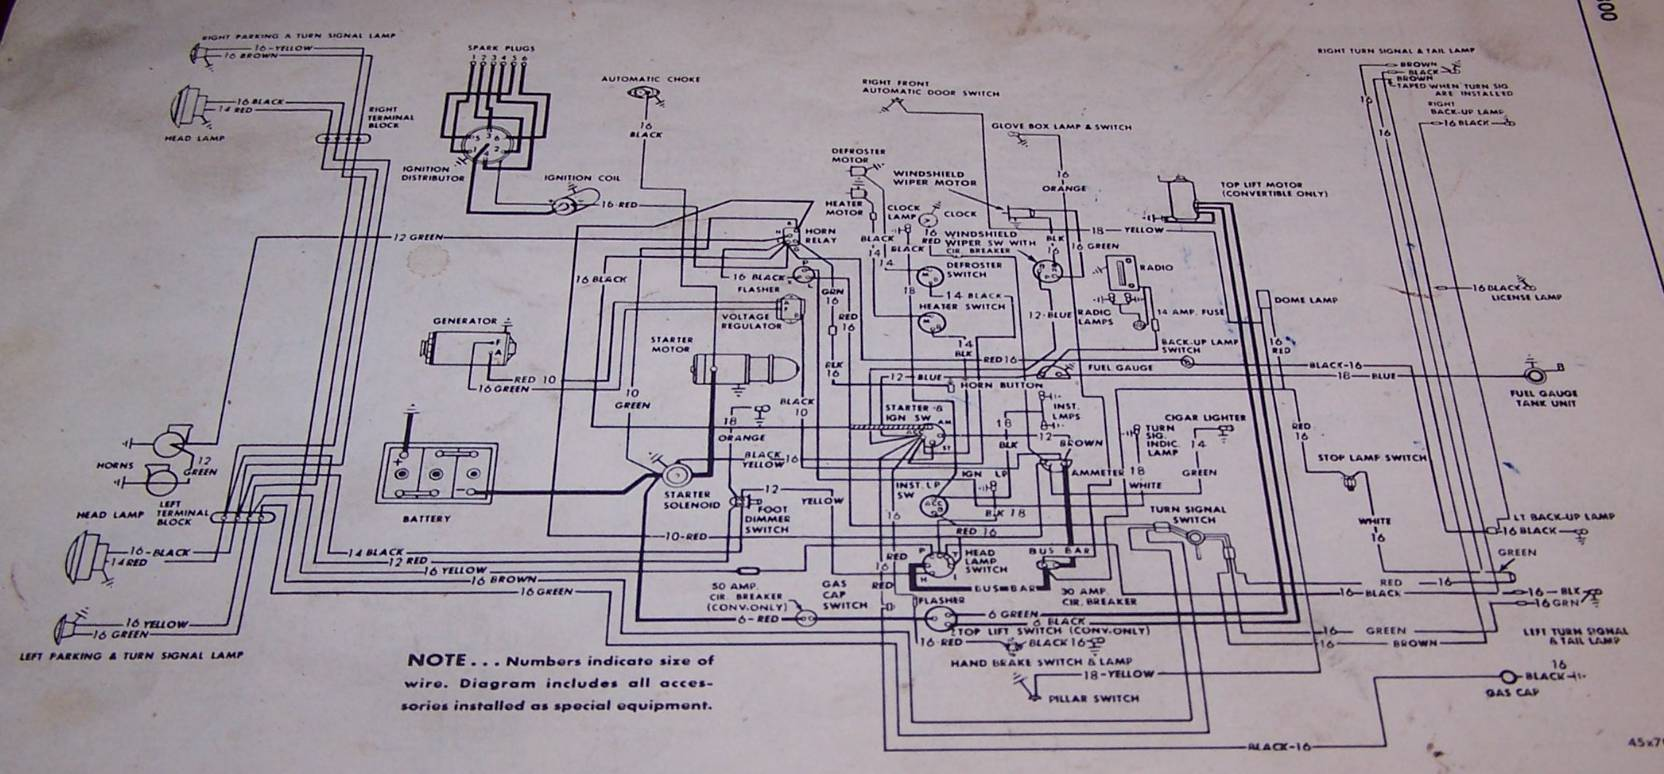 1947 plymouth special del wiring diagram house wiring diagram rh maxturner co